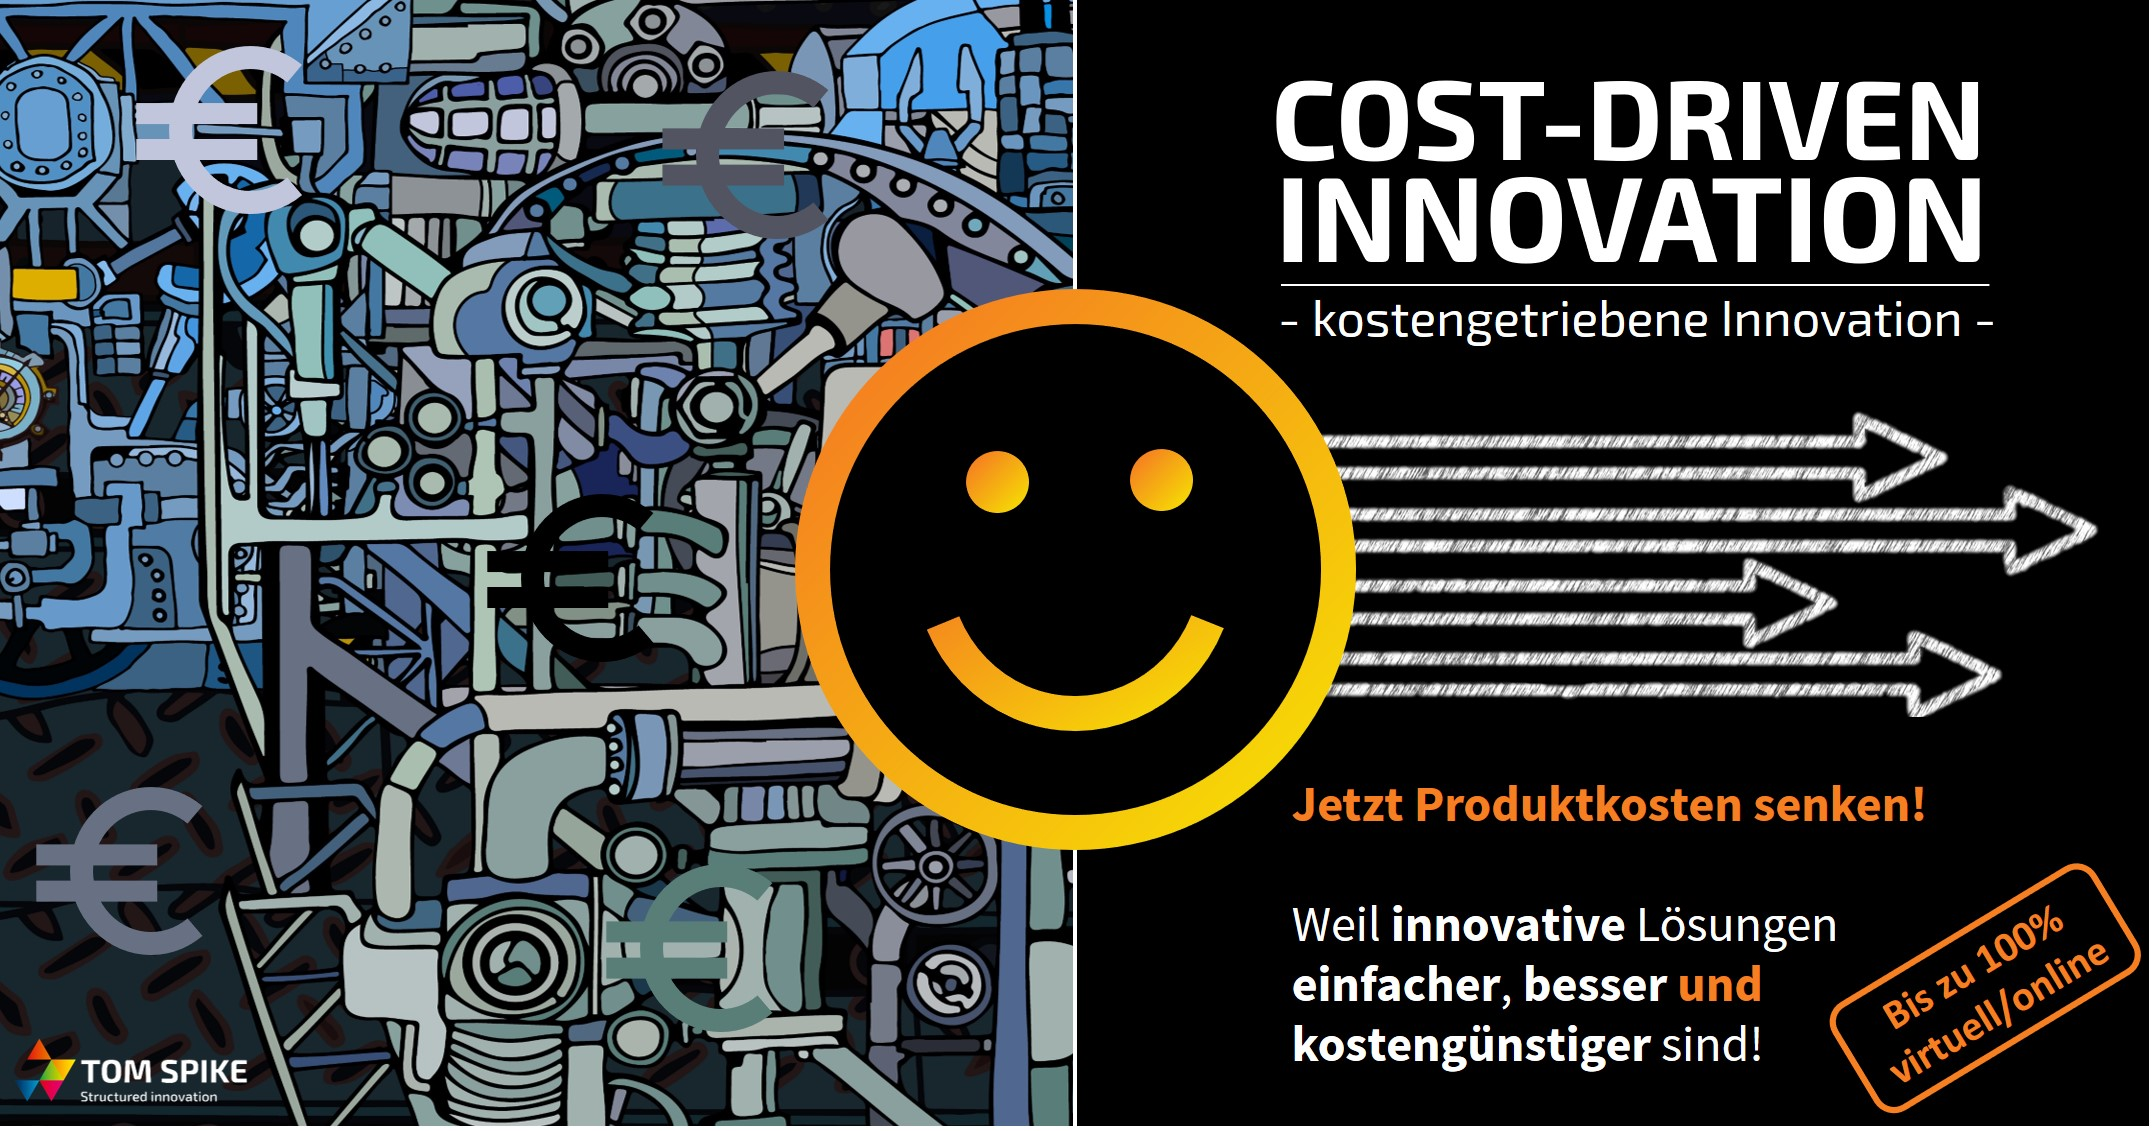 Komplexe Technik Mit Smiley Zur Visualisierung Von Cost-Driven Innovation - TOM SPIKE